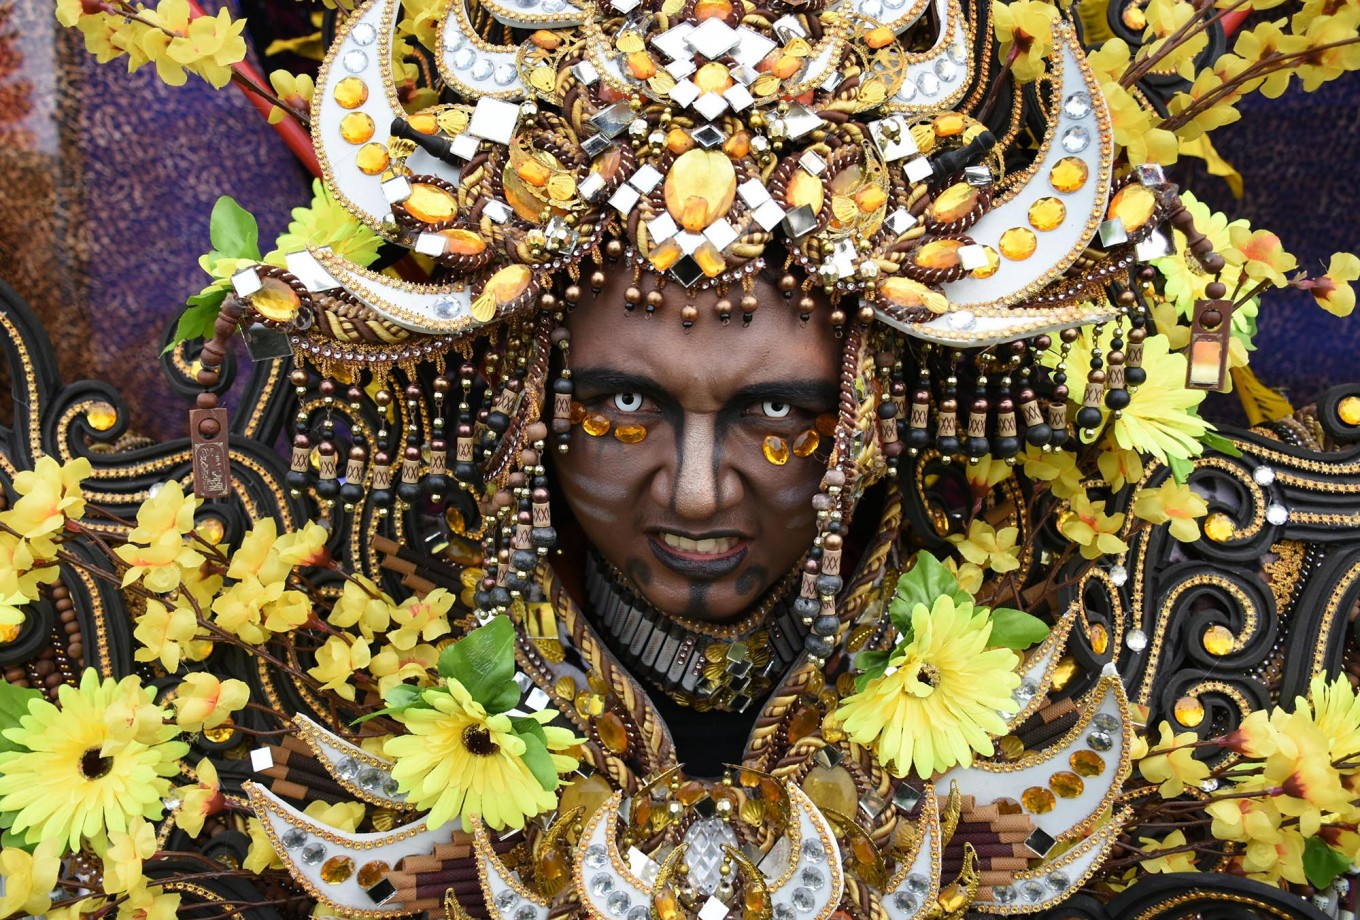 A carnival participant expresses himself before the parade kicks off. JP/Aman Rochman